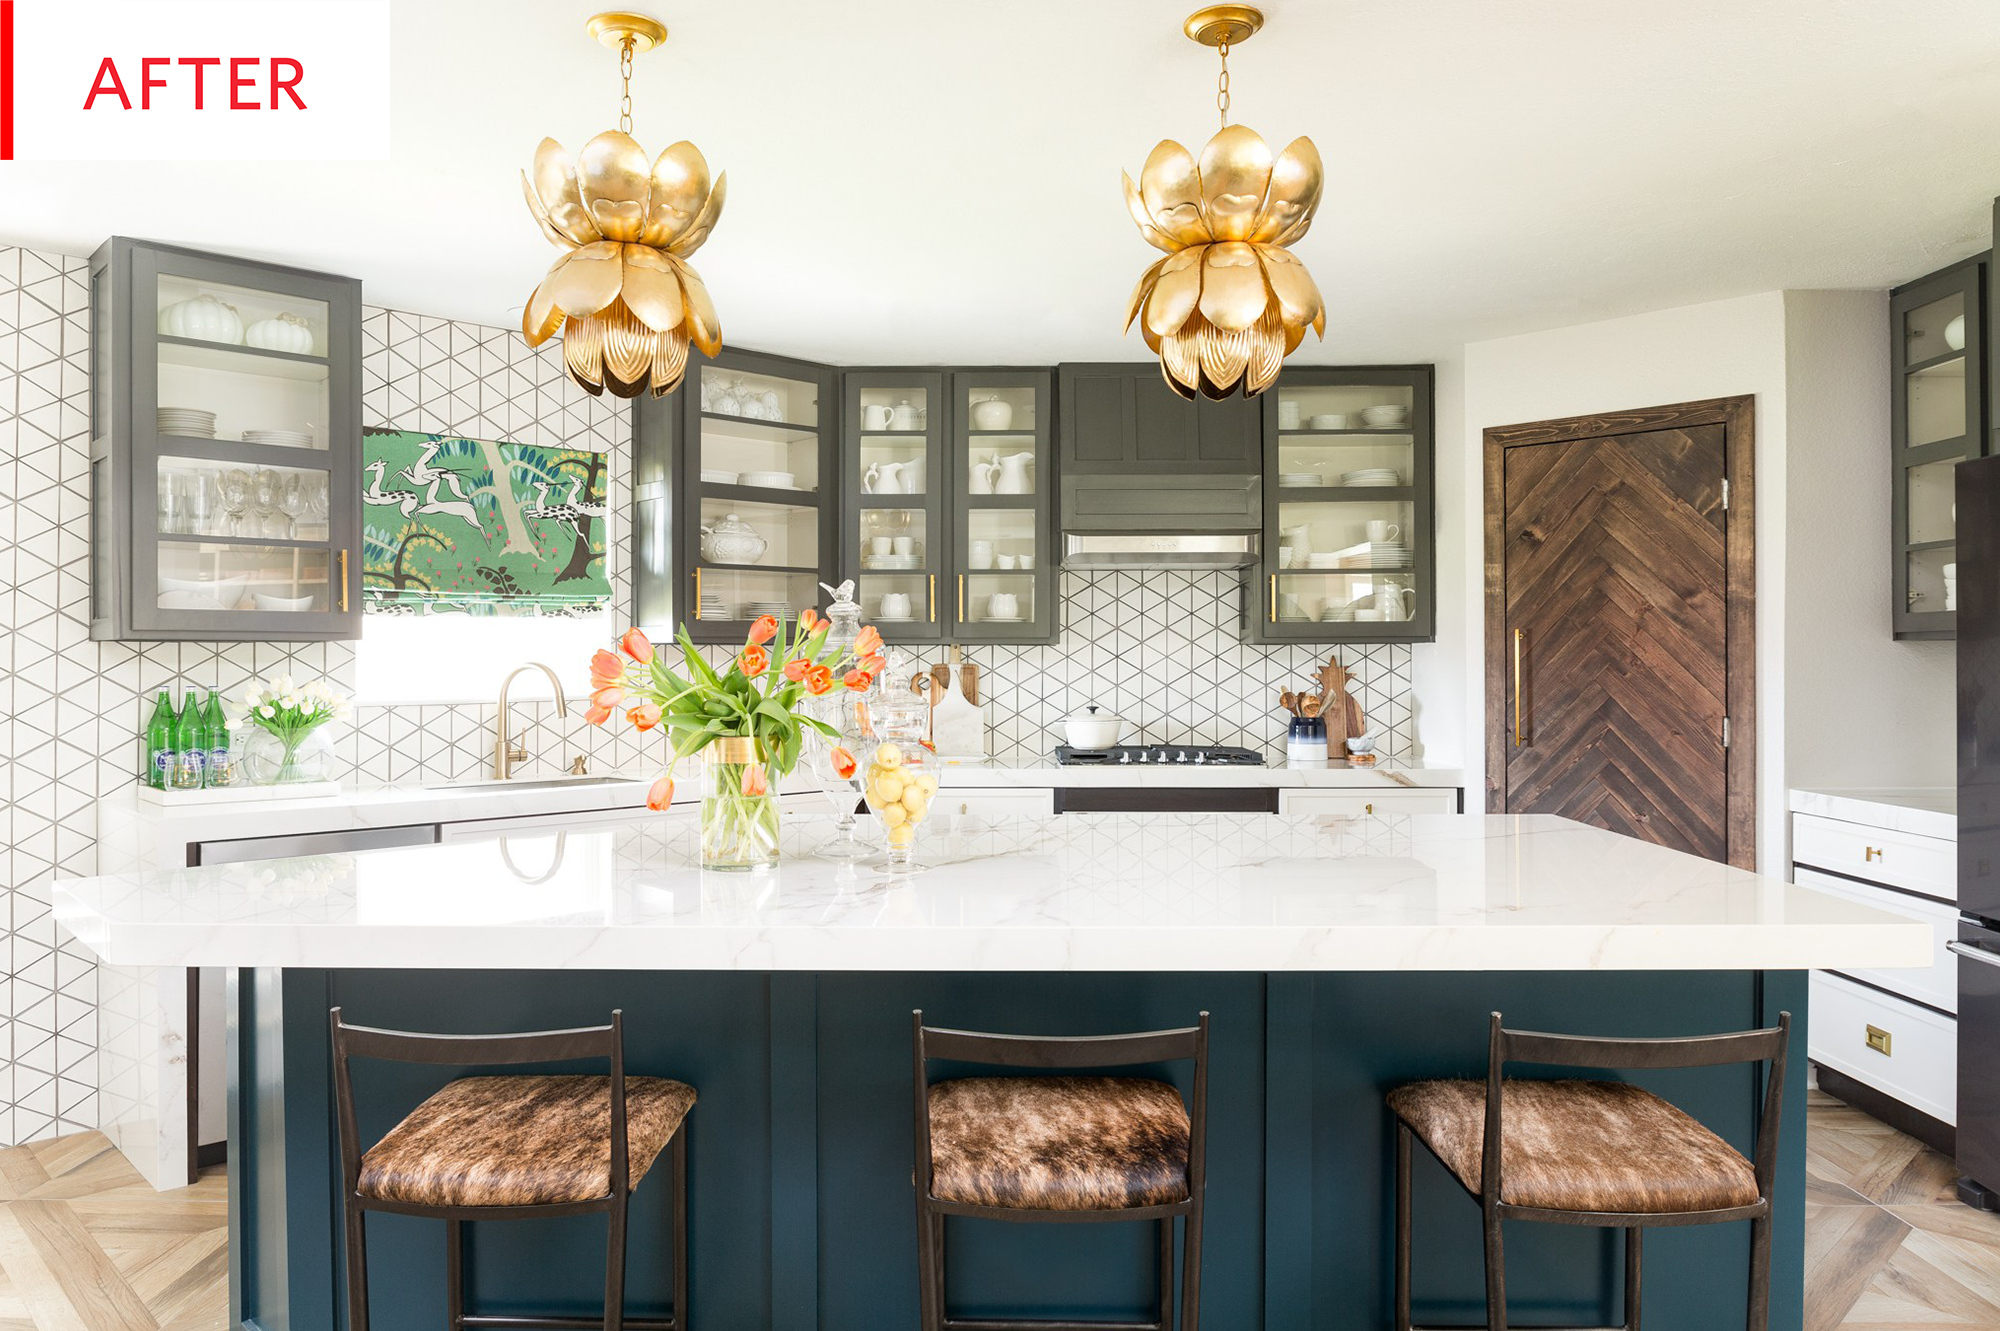 Basic kitchen cabinets  This Kitchen Now Brims With Life Texture u Personality  Kitchens